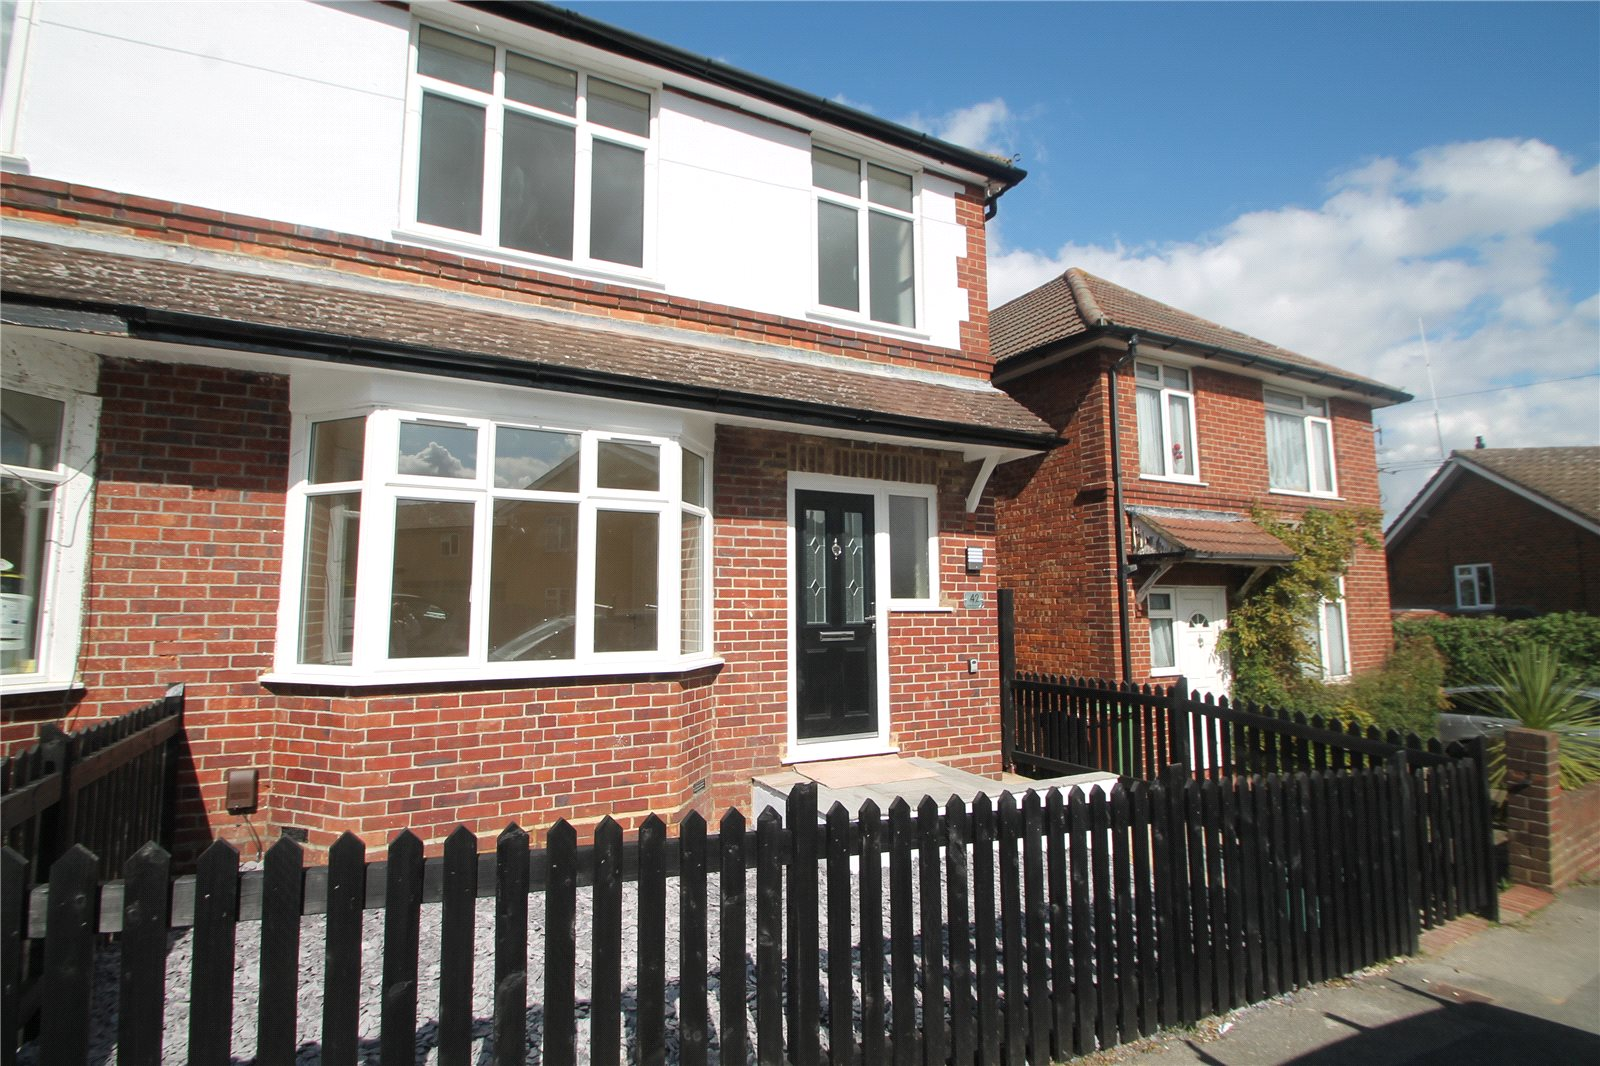 3 Bedrooms Semi Detached House for sale in Great Brooms Road Tunbridge Wells Kent TN4